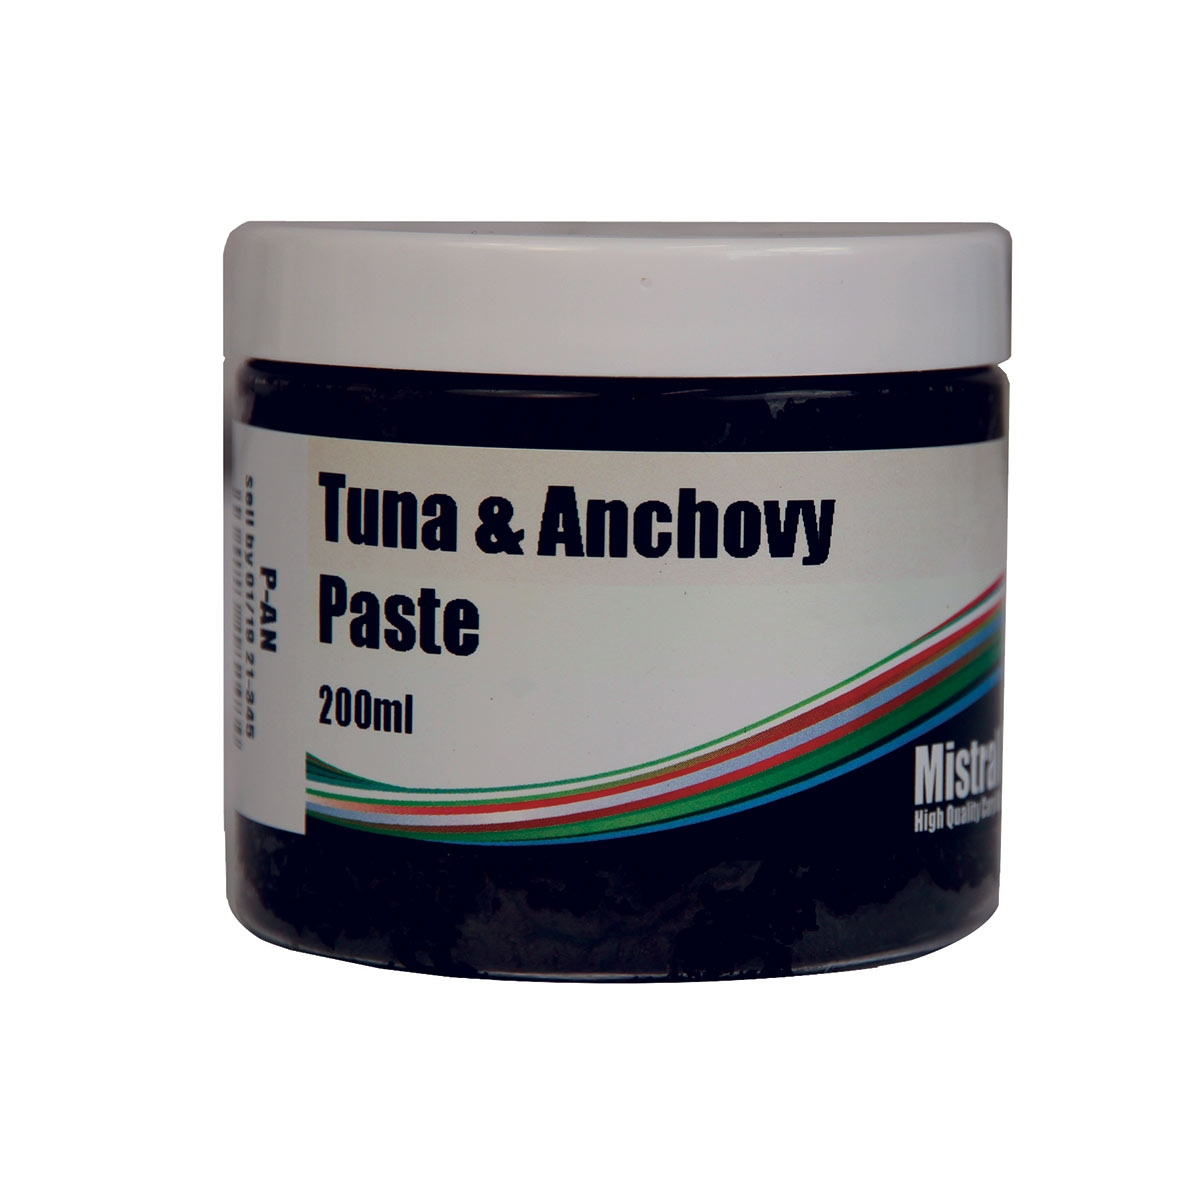 Tuna Anchovy Paste